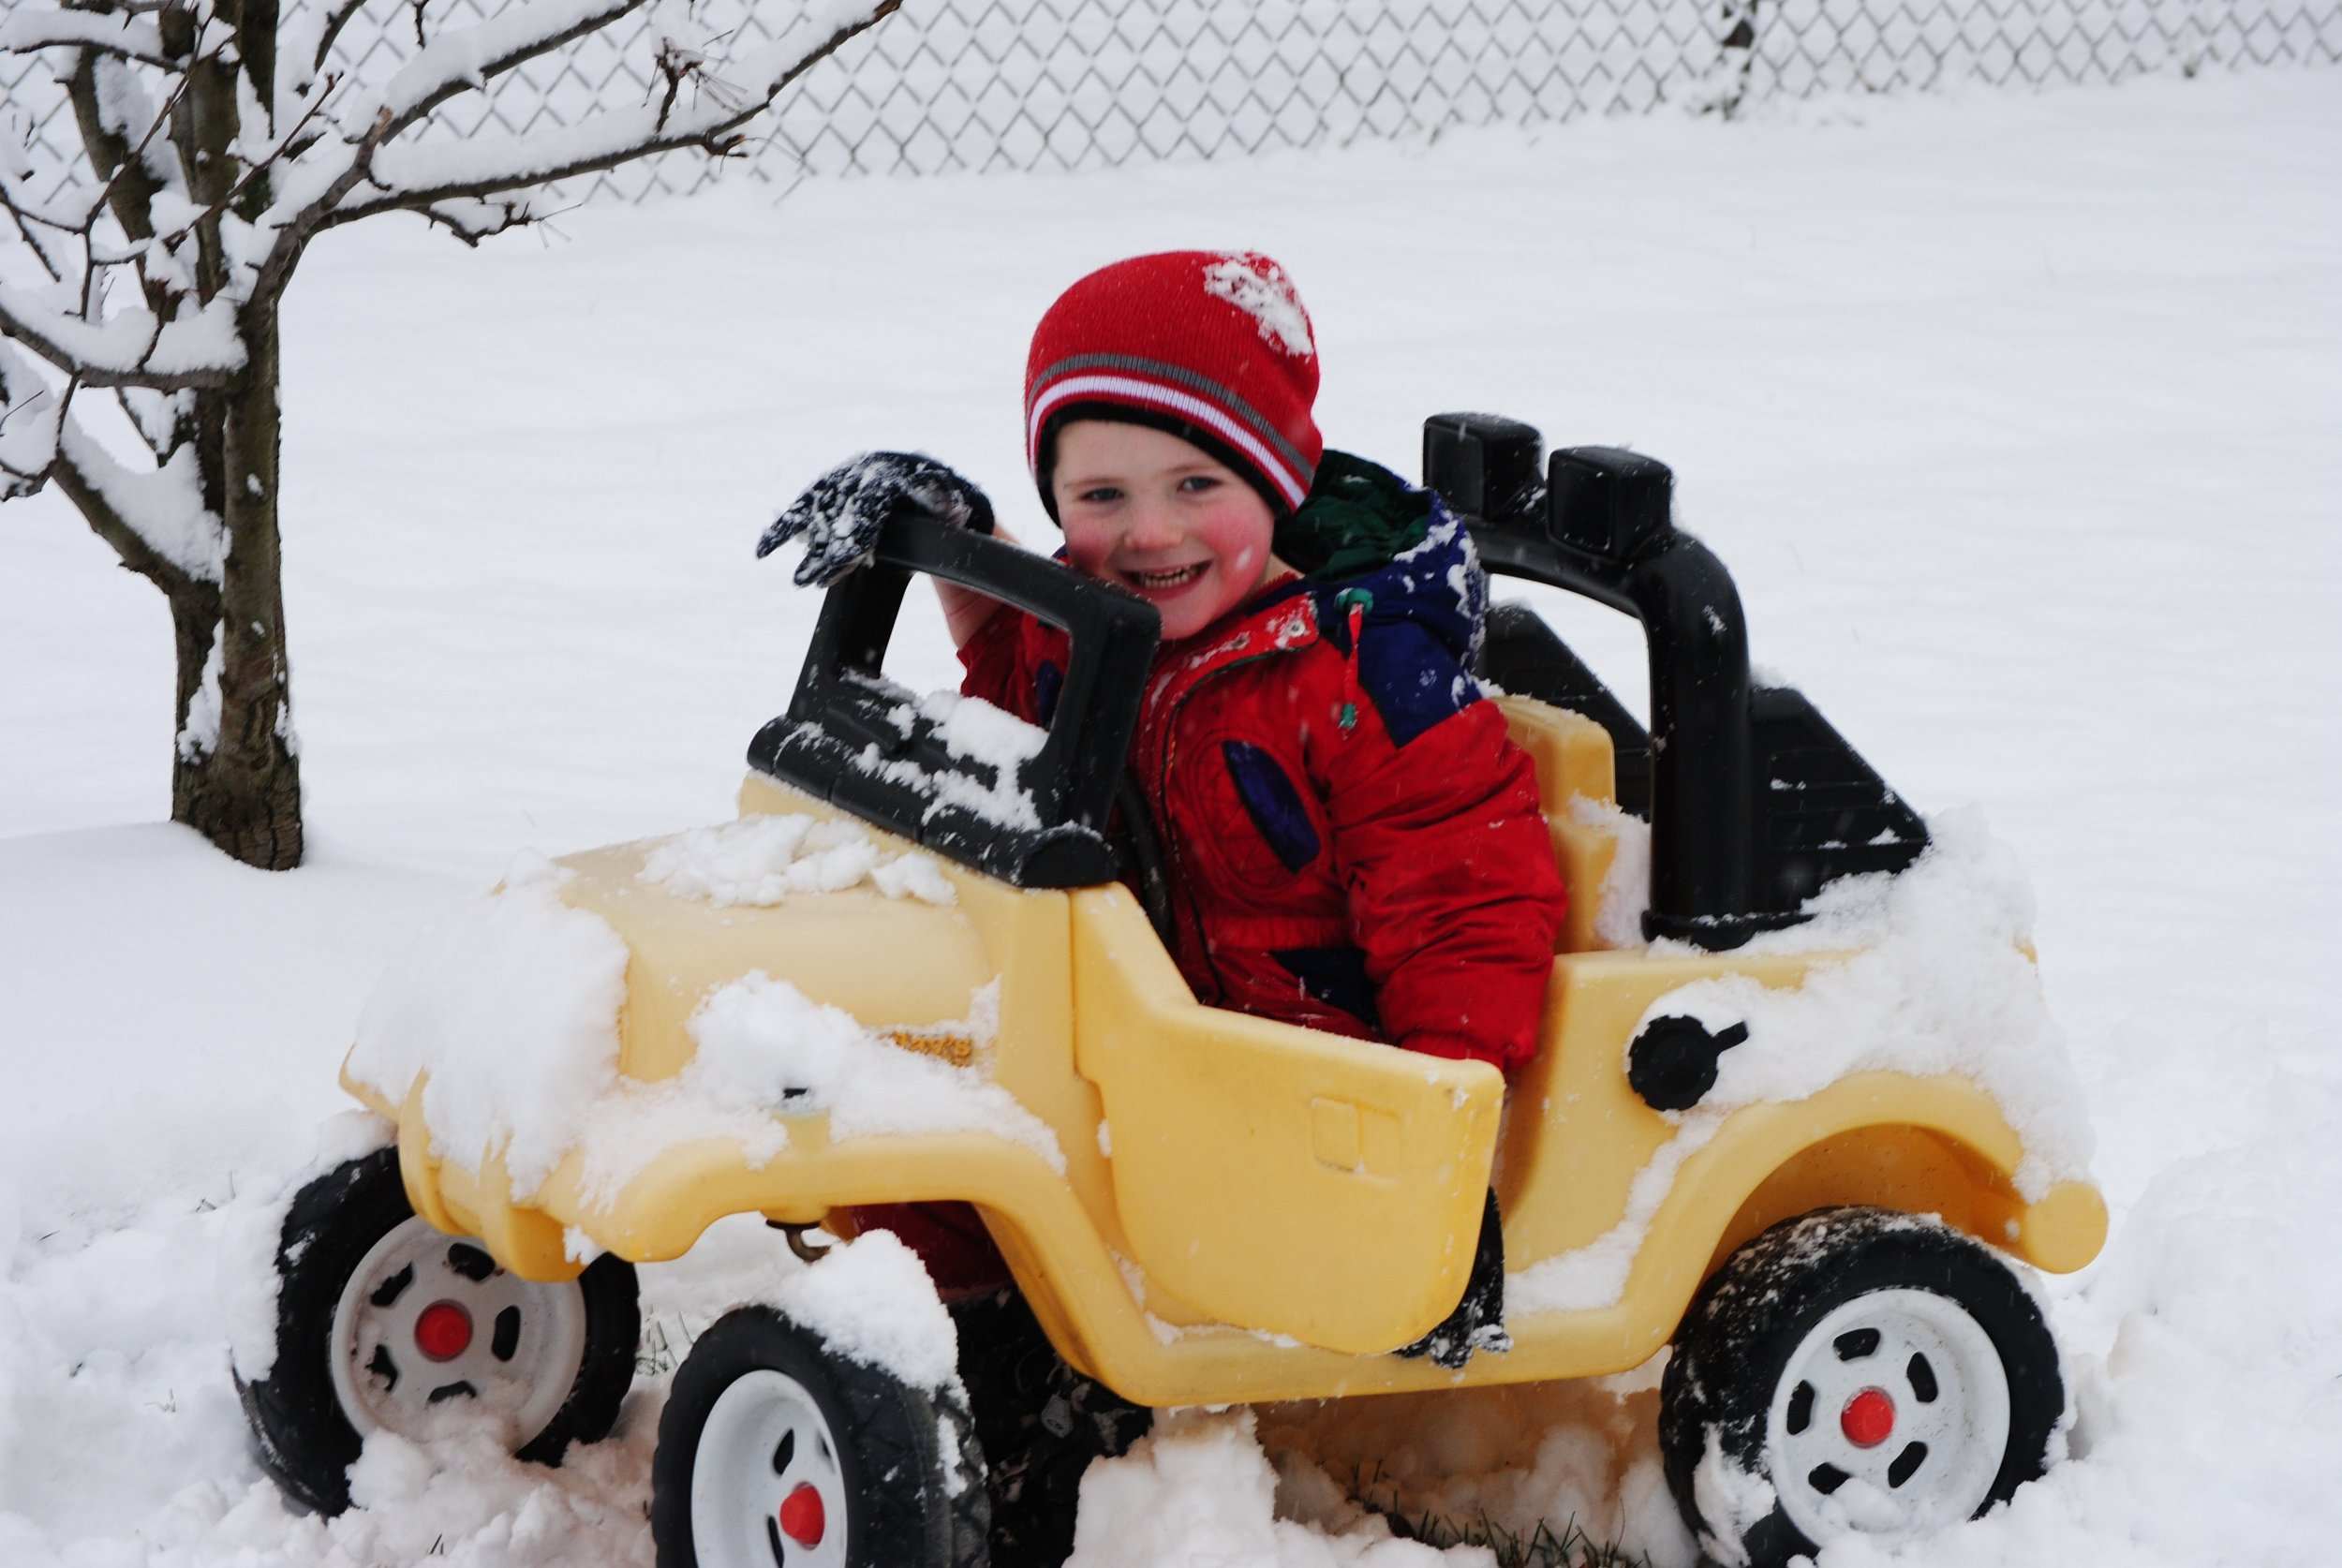 Make sure to clear the snow off your vehicle before you venture out. You want to be able to see and, just as importantly, you want other drivers to see you.